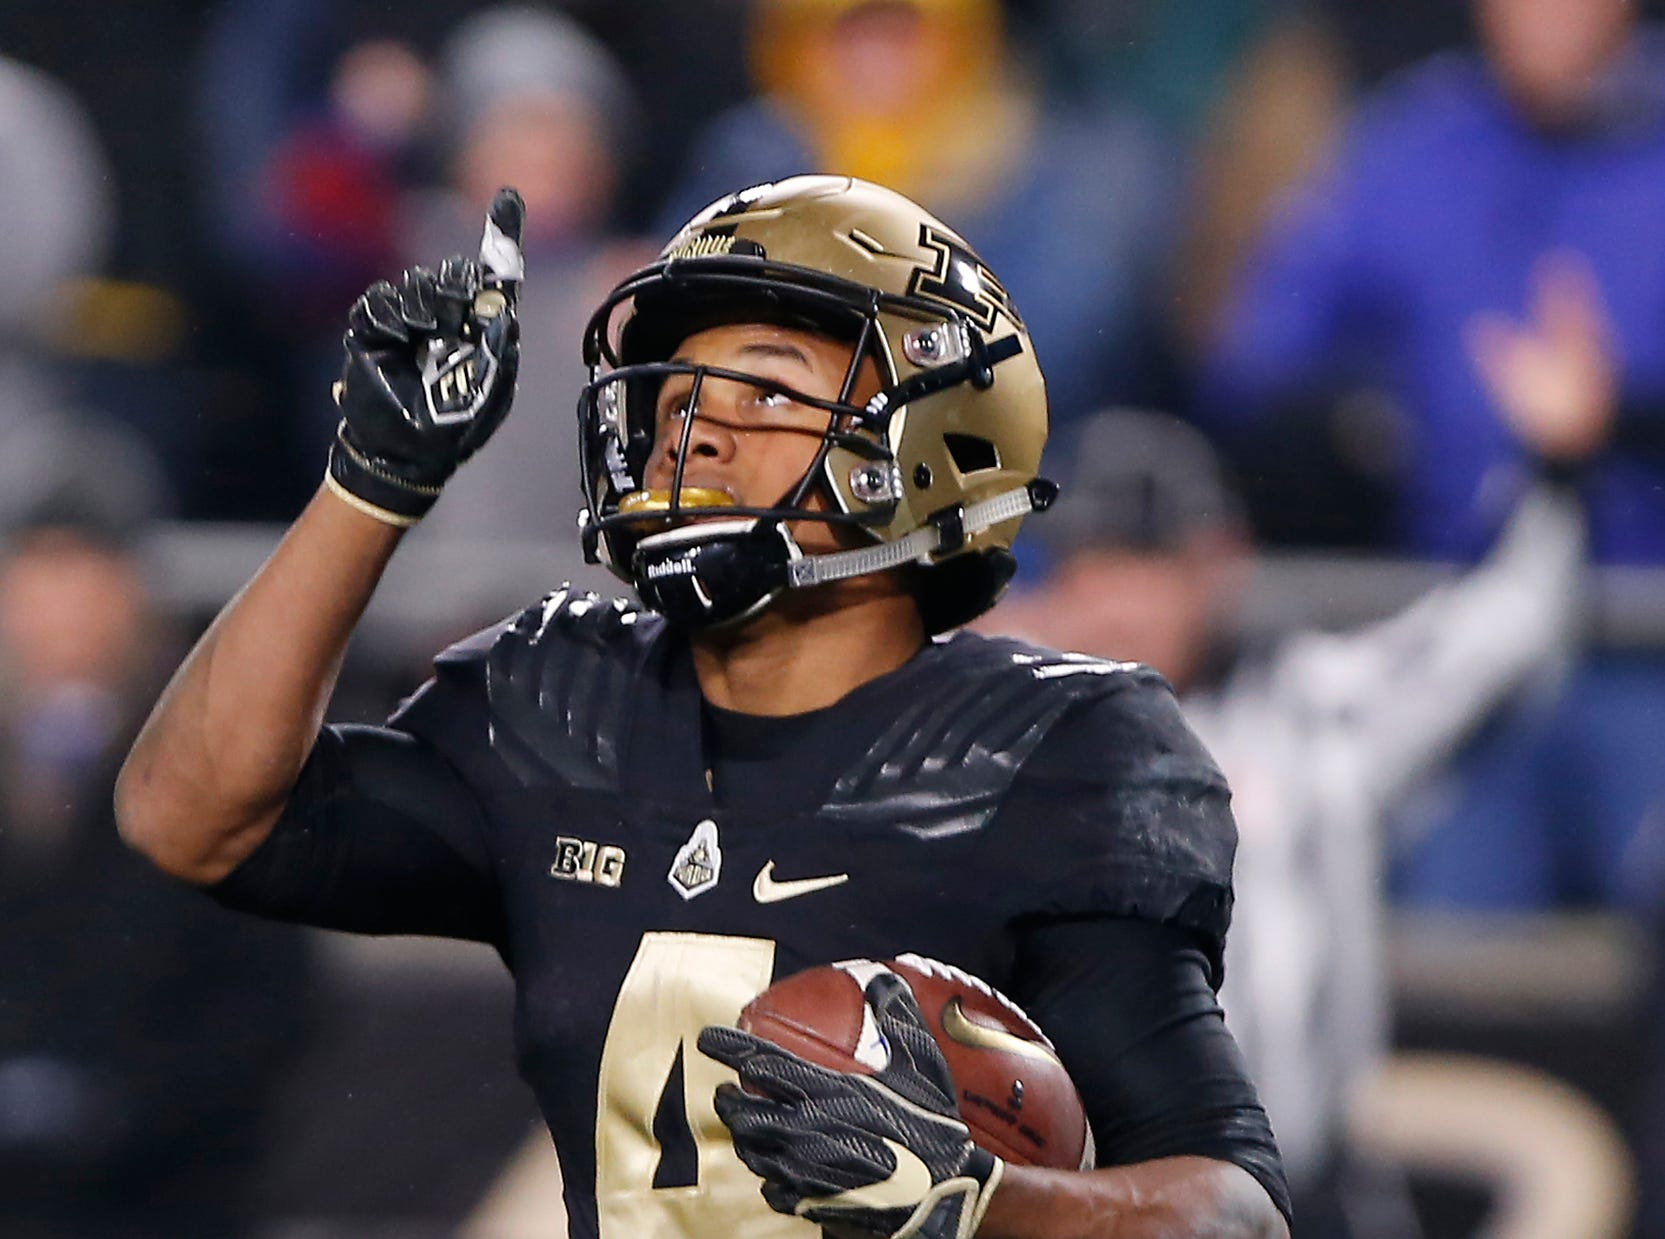 Rondale Moore of Purdue points skyward after his touchdown reception with 57 seconds remaining in the third quarter against Wisconsin Saturday, November 17, 2018, at Ross-Ade Stadium. Purdue fell to Wisconsin 47-44 3OT.